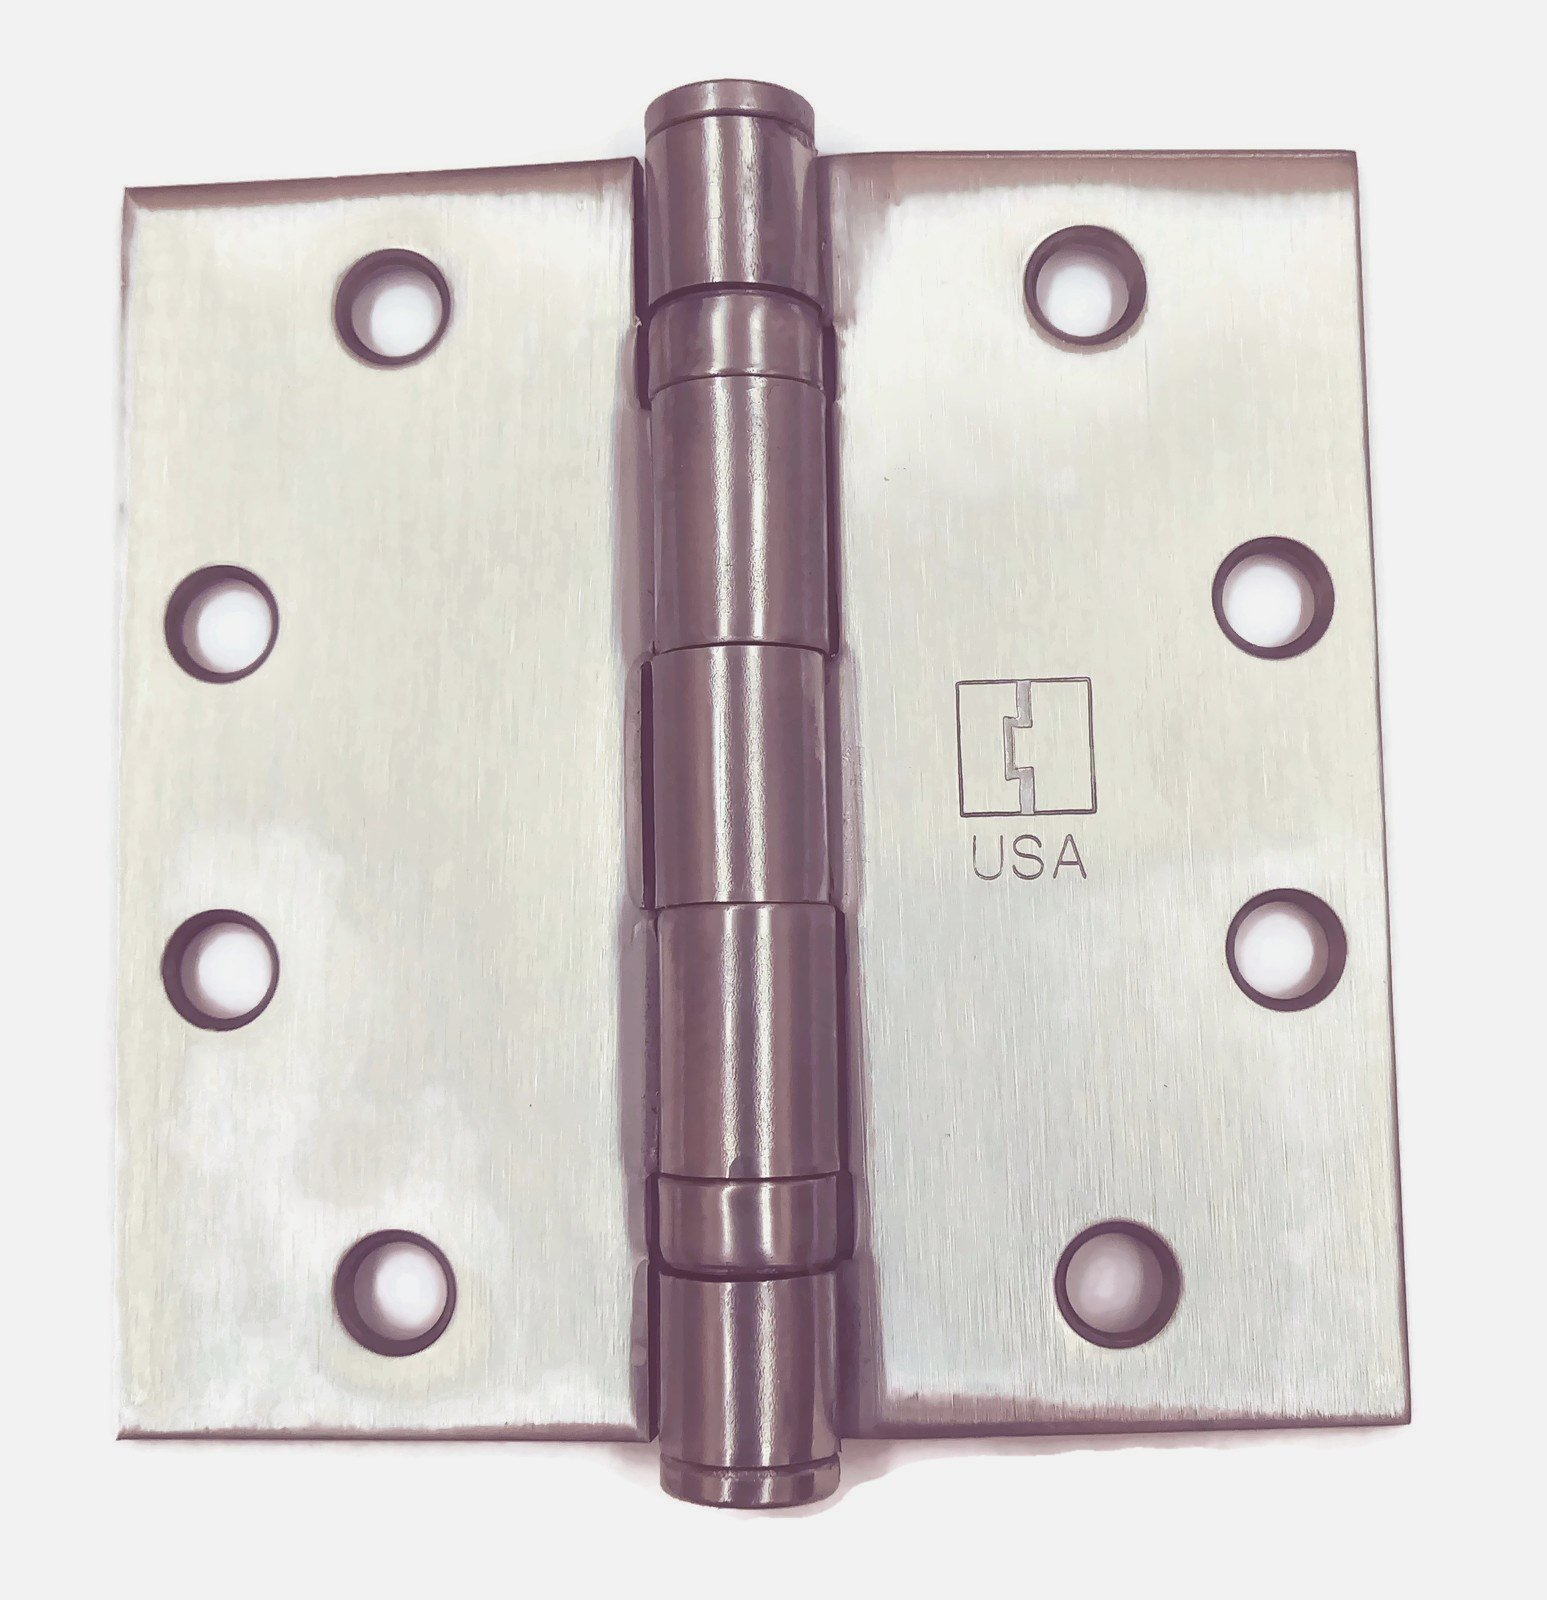 Hager Full Mortise Stainless Steel Hinge BB1191 4.5 x 4.5 US32D/630 (Satin Stainless Steel) - Box of 3 Ball Bearing hinges by HAGER Companies